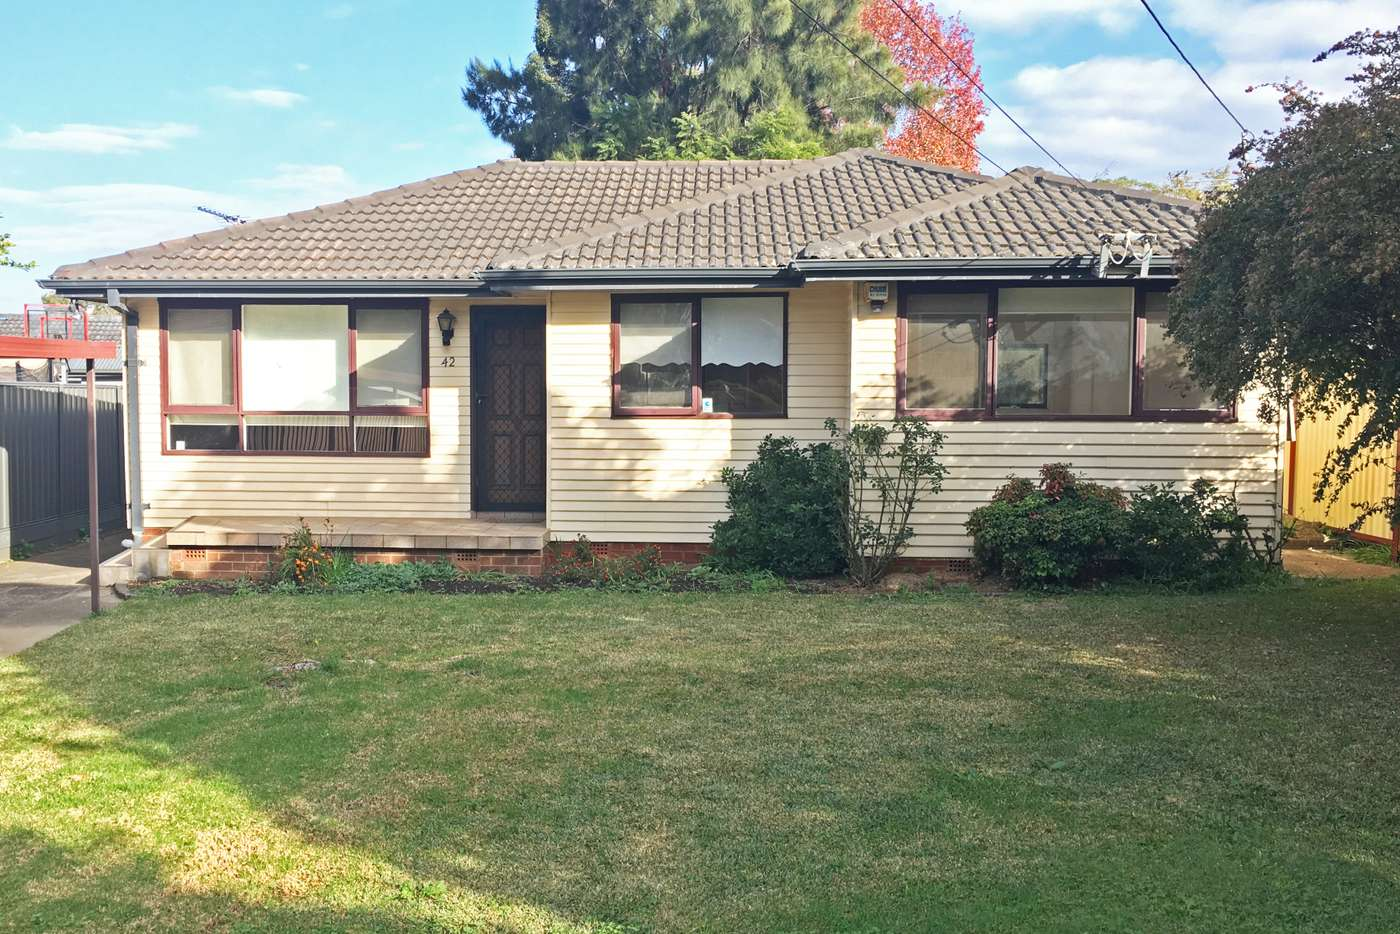 Main view of Homely house listing, 42 Monaro St, Seven Hills NSW 2147